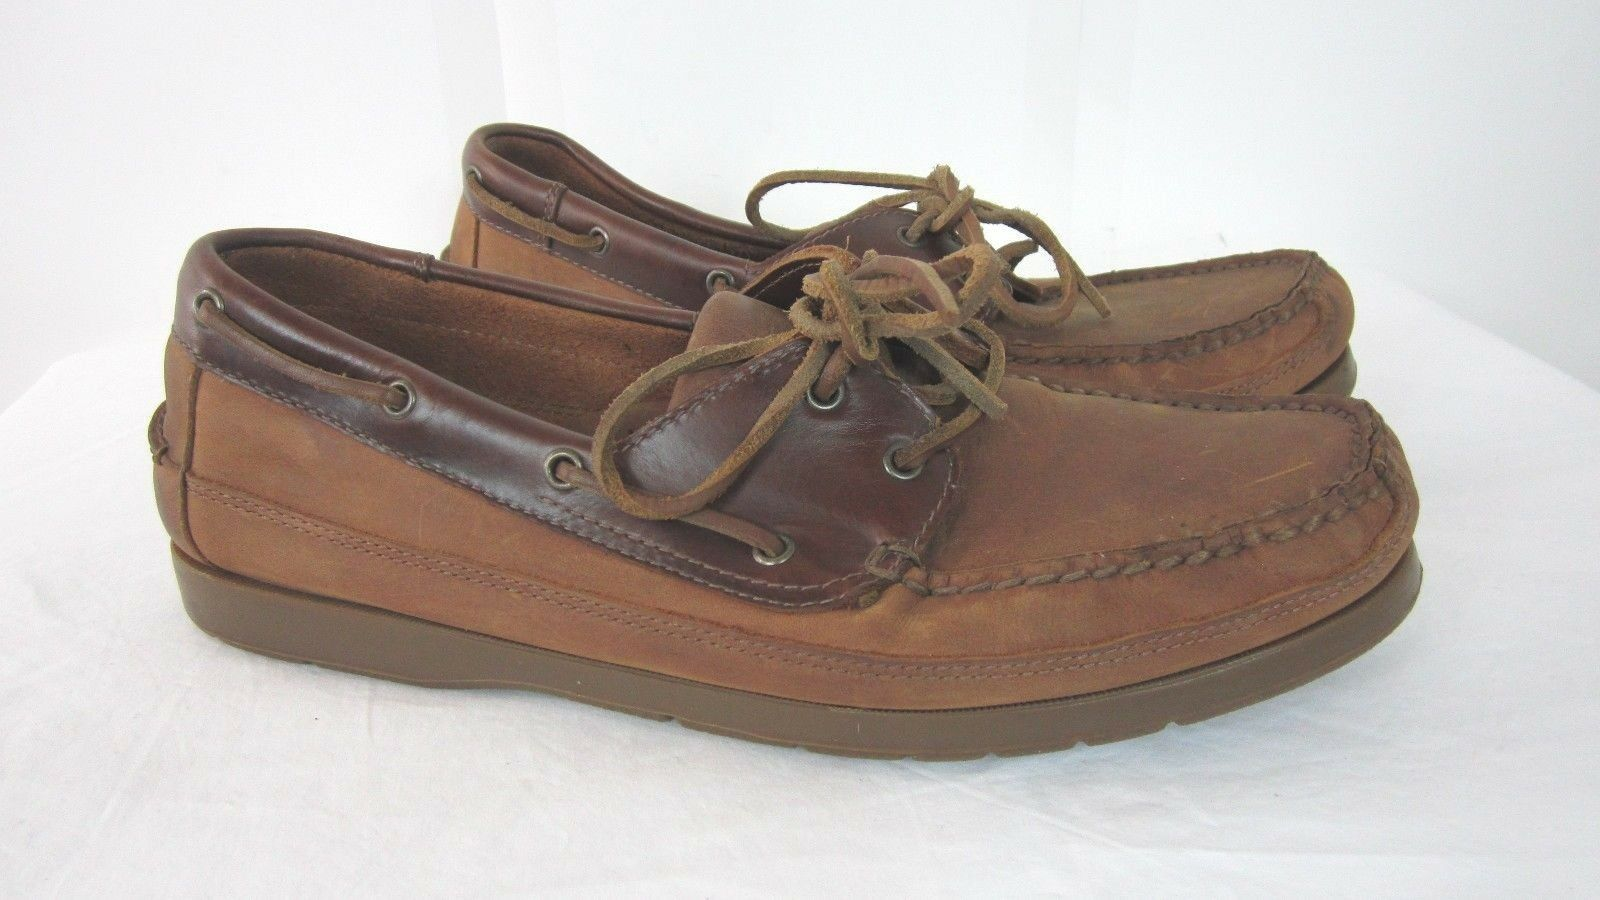 Nunn Bush Mens Loafers Boat shoes Brown Leather Size 11 M